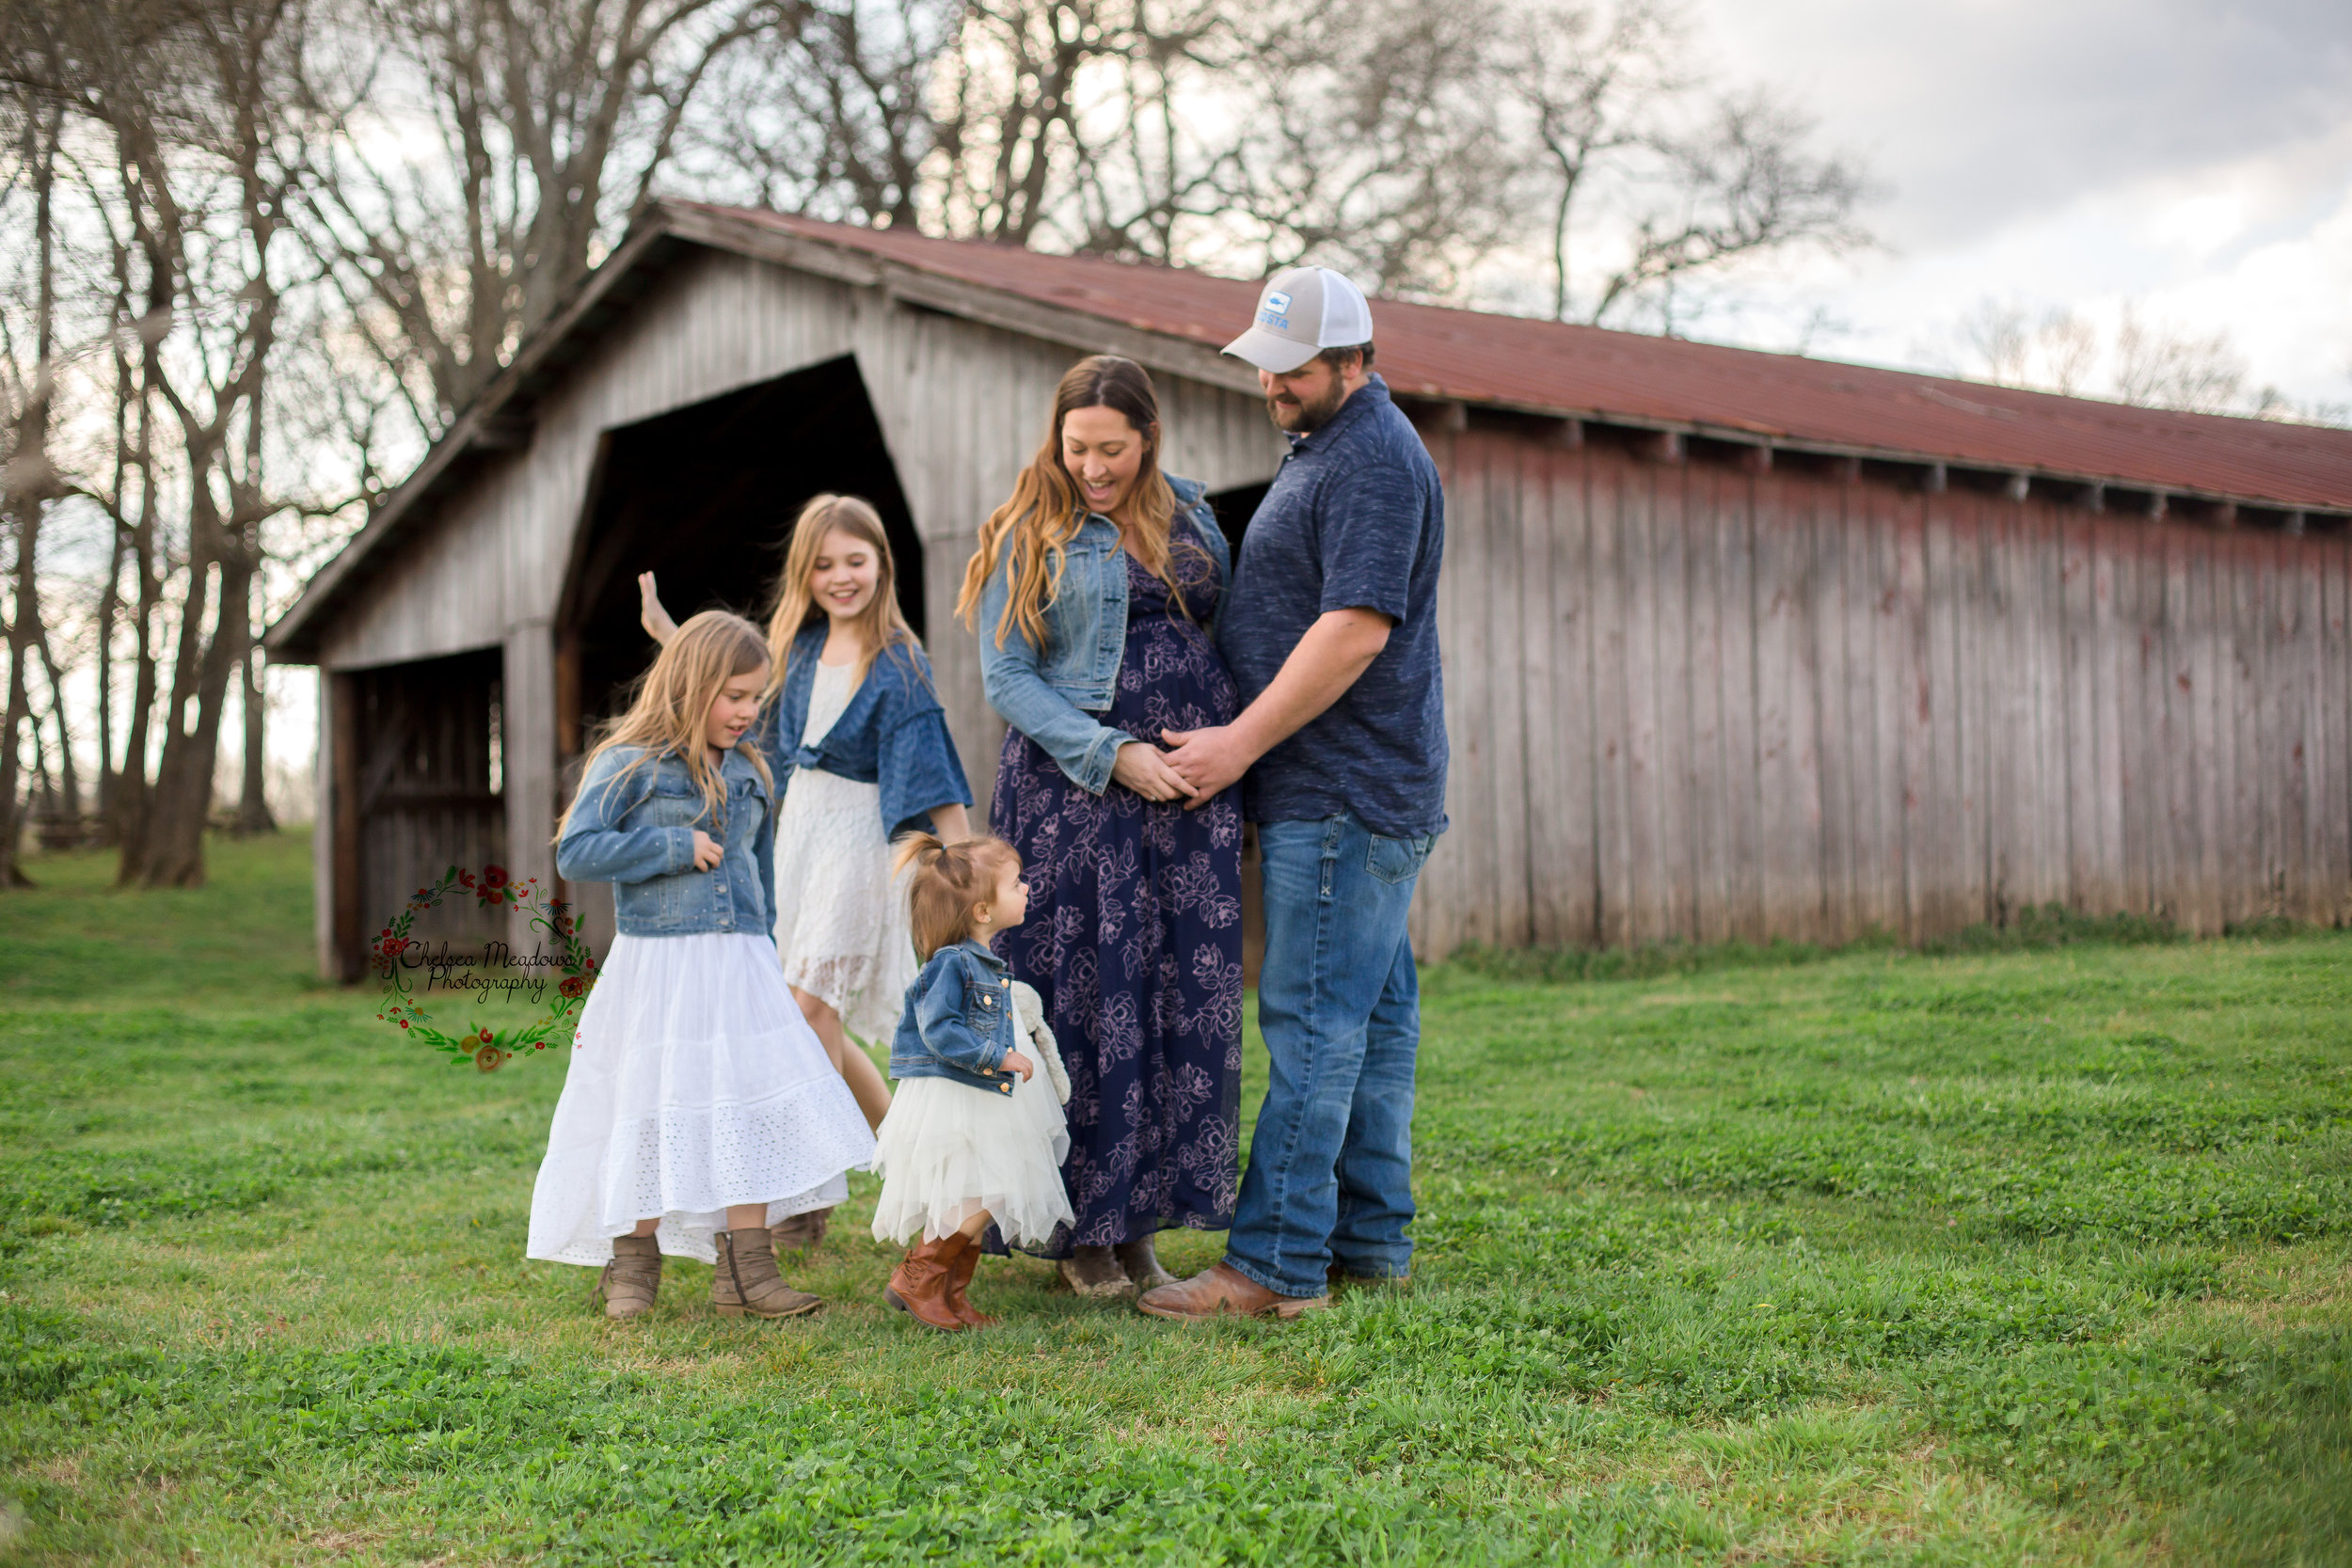 Gann Maternity Session - Nashville Maternity Photographer - Chelsea Meadows Photography (94).jpg